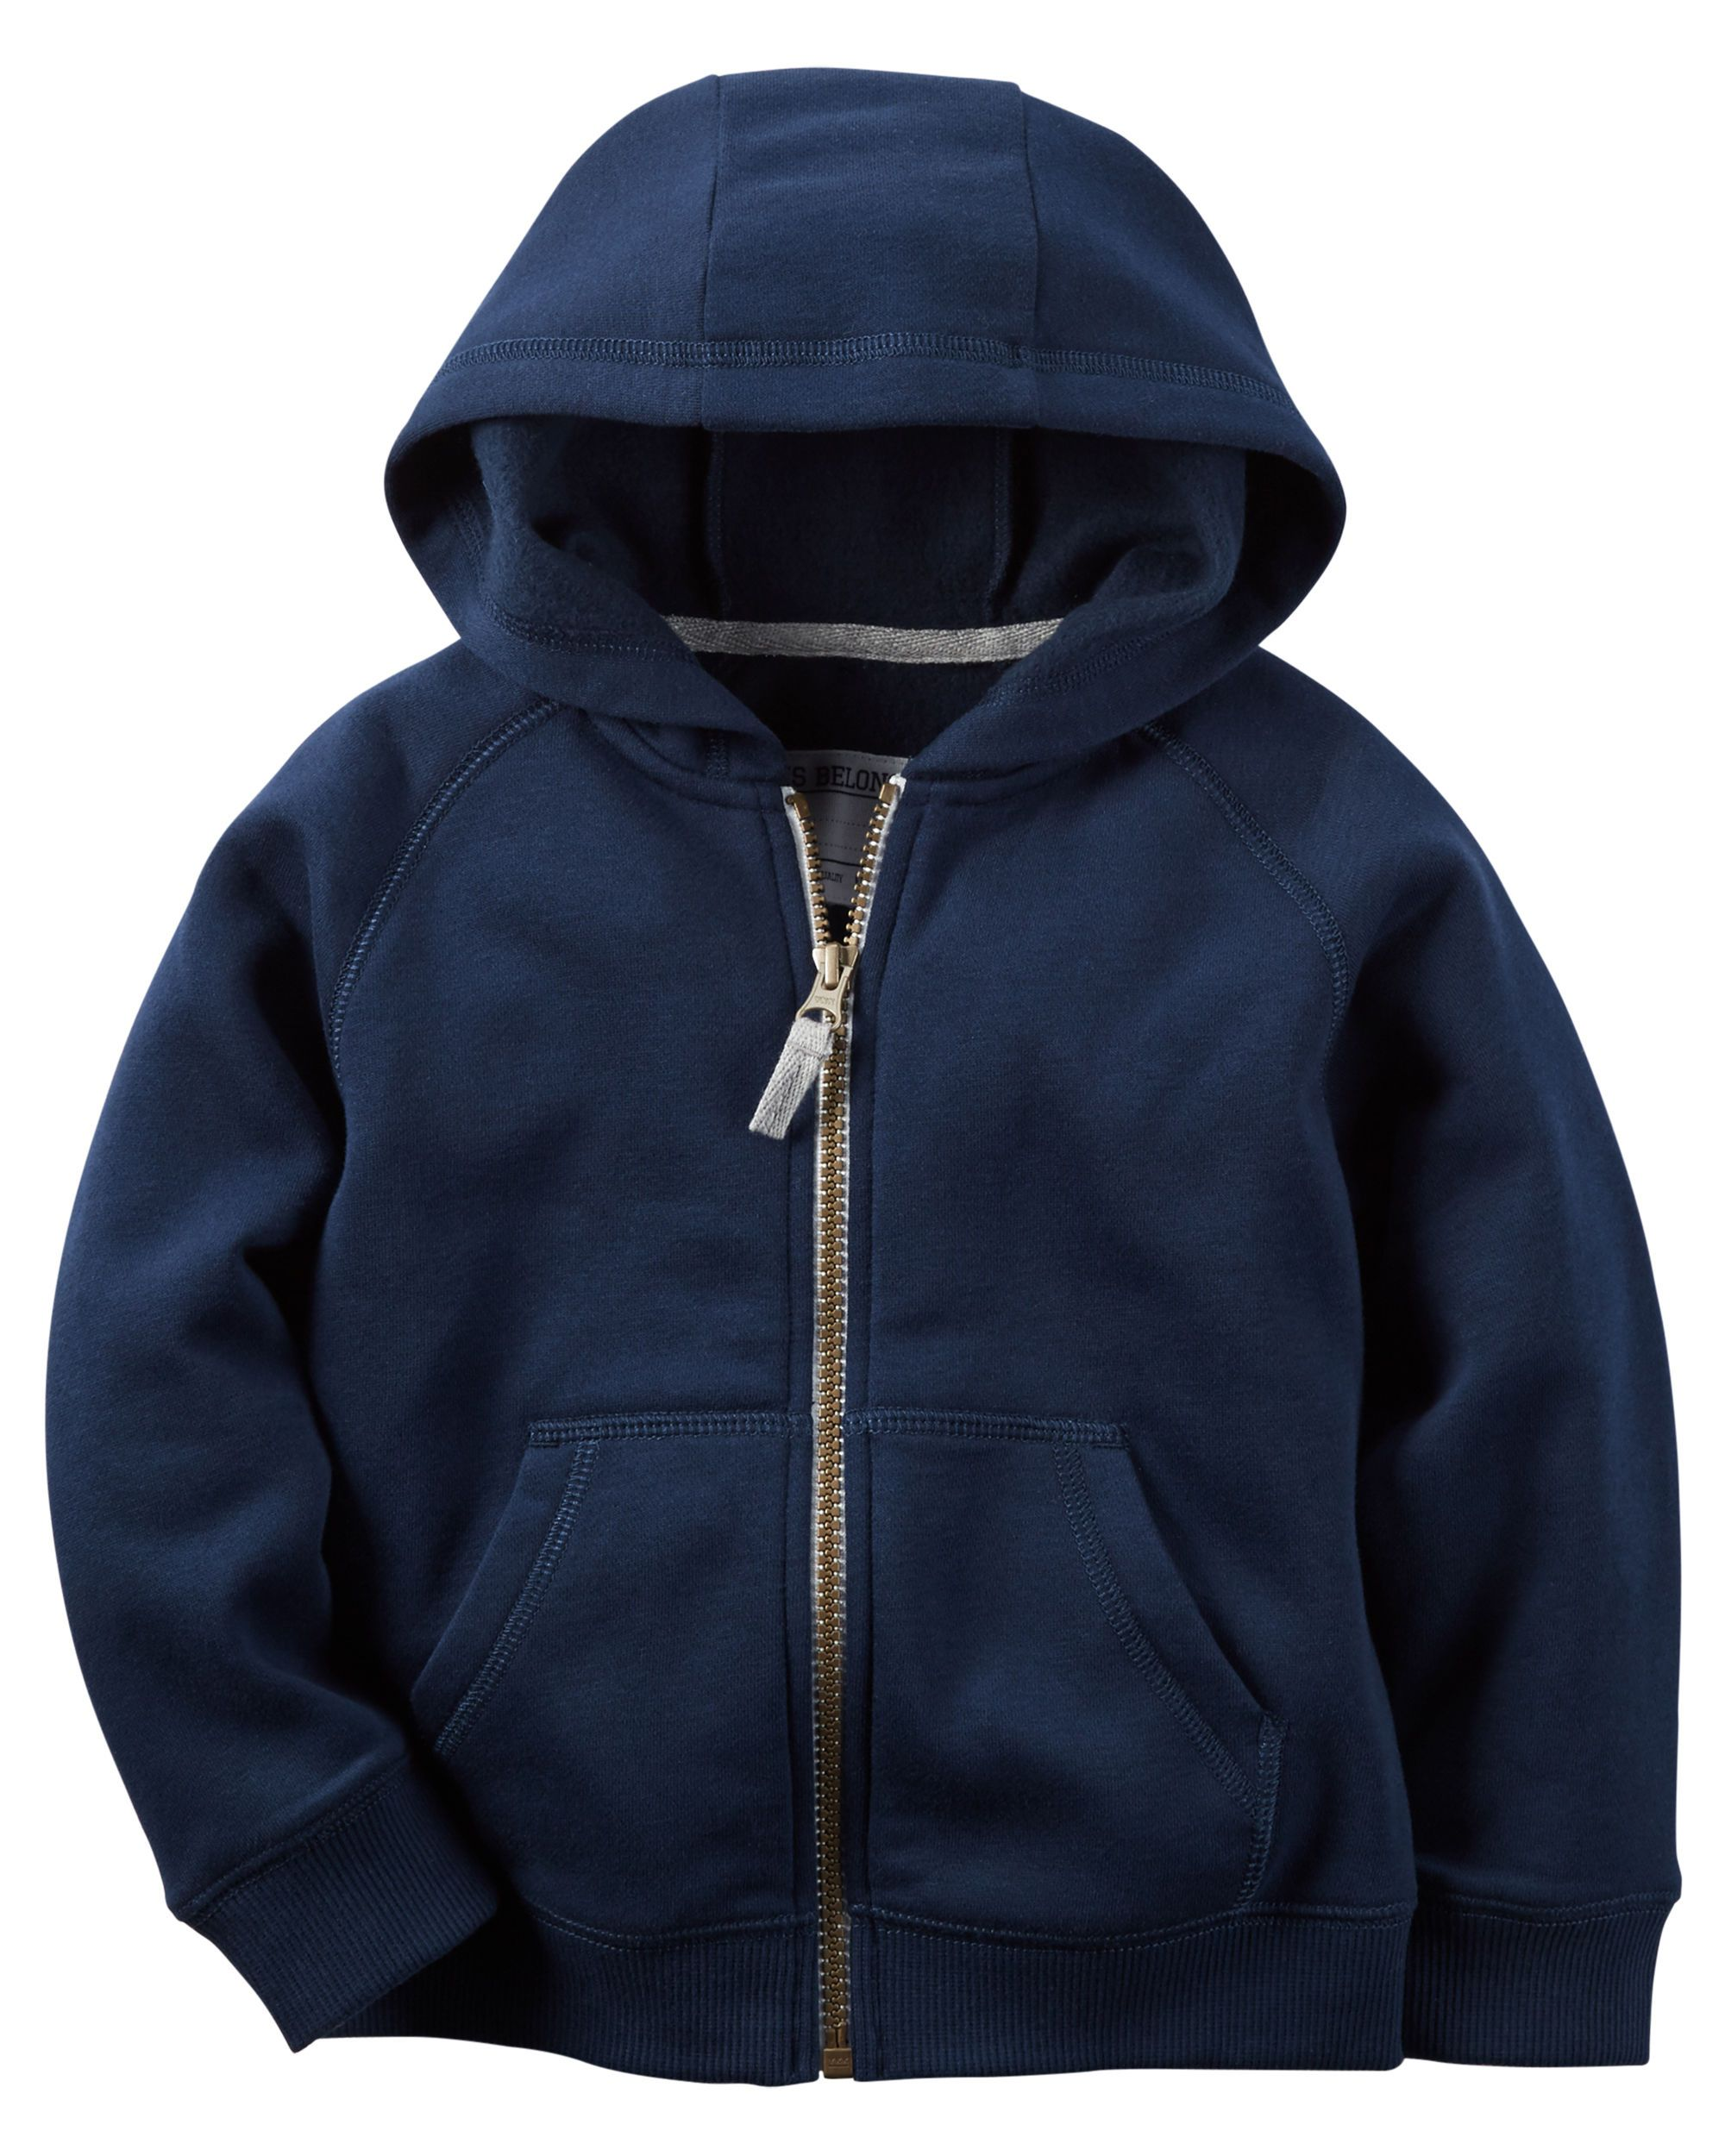 Fleece zipup hoodie canada shops and kid